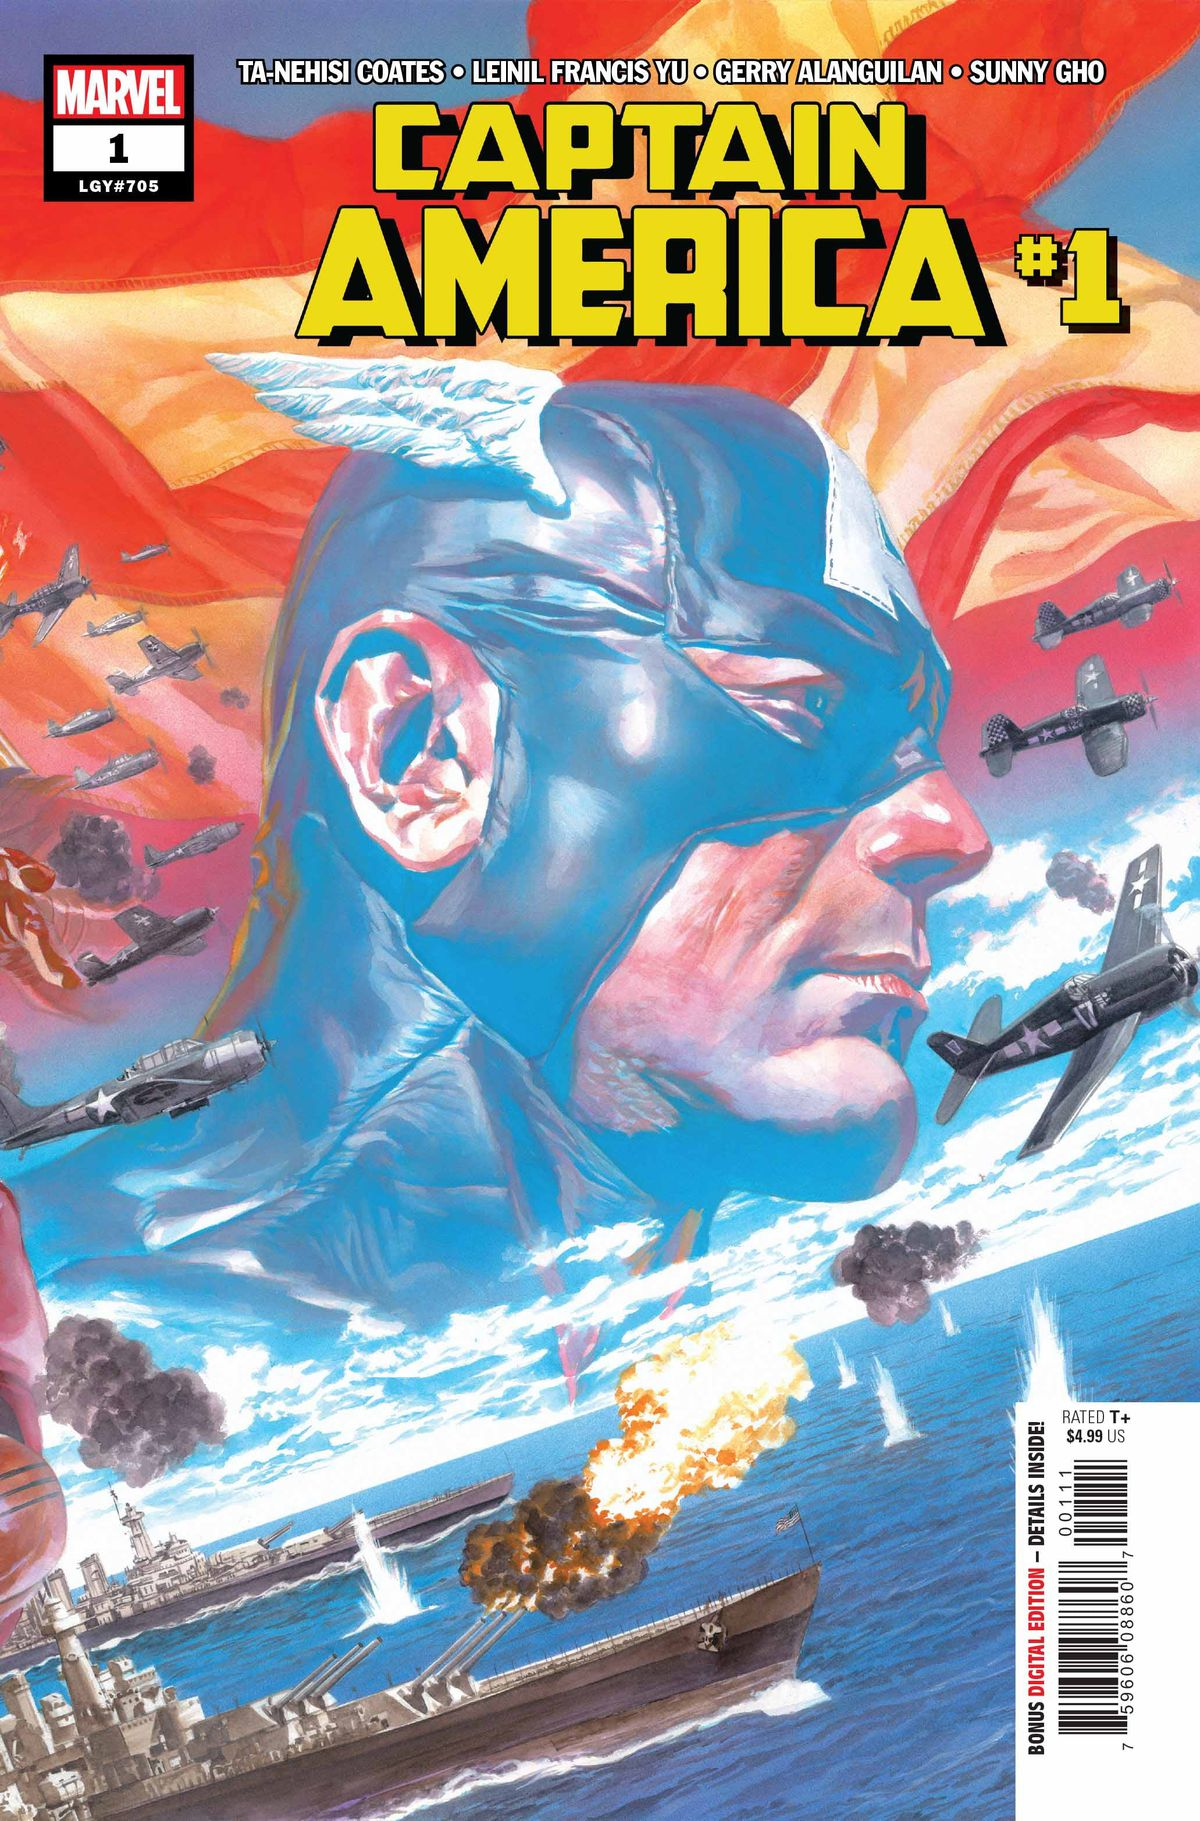 Battleships duel with fighter planes, an image of Captain America and the American flag superimposed, on the cover of Captain America #1, Marvel Comics (2018).